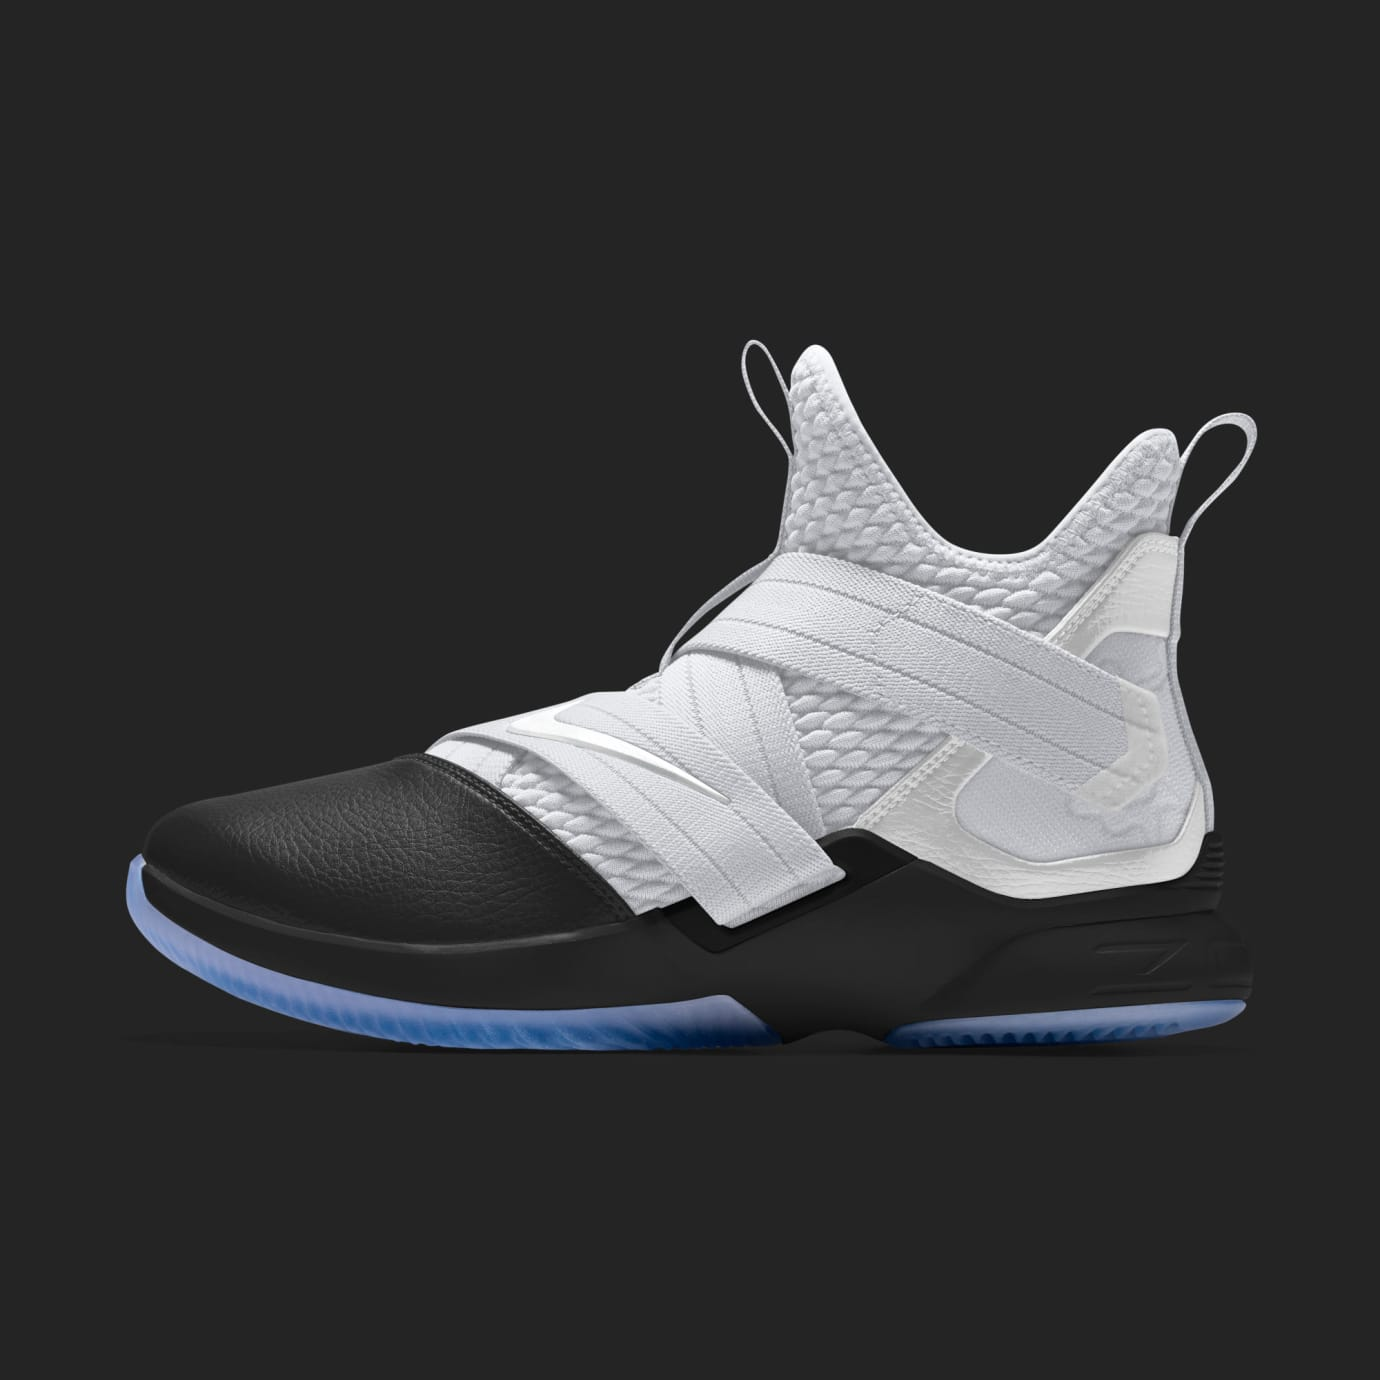 88f899e5c1f NIKEiD LeBron Soldier 12 XII Release Date